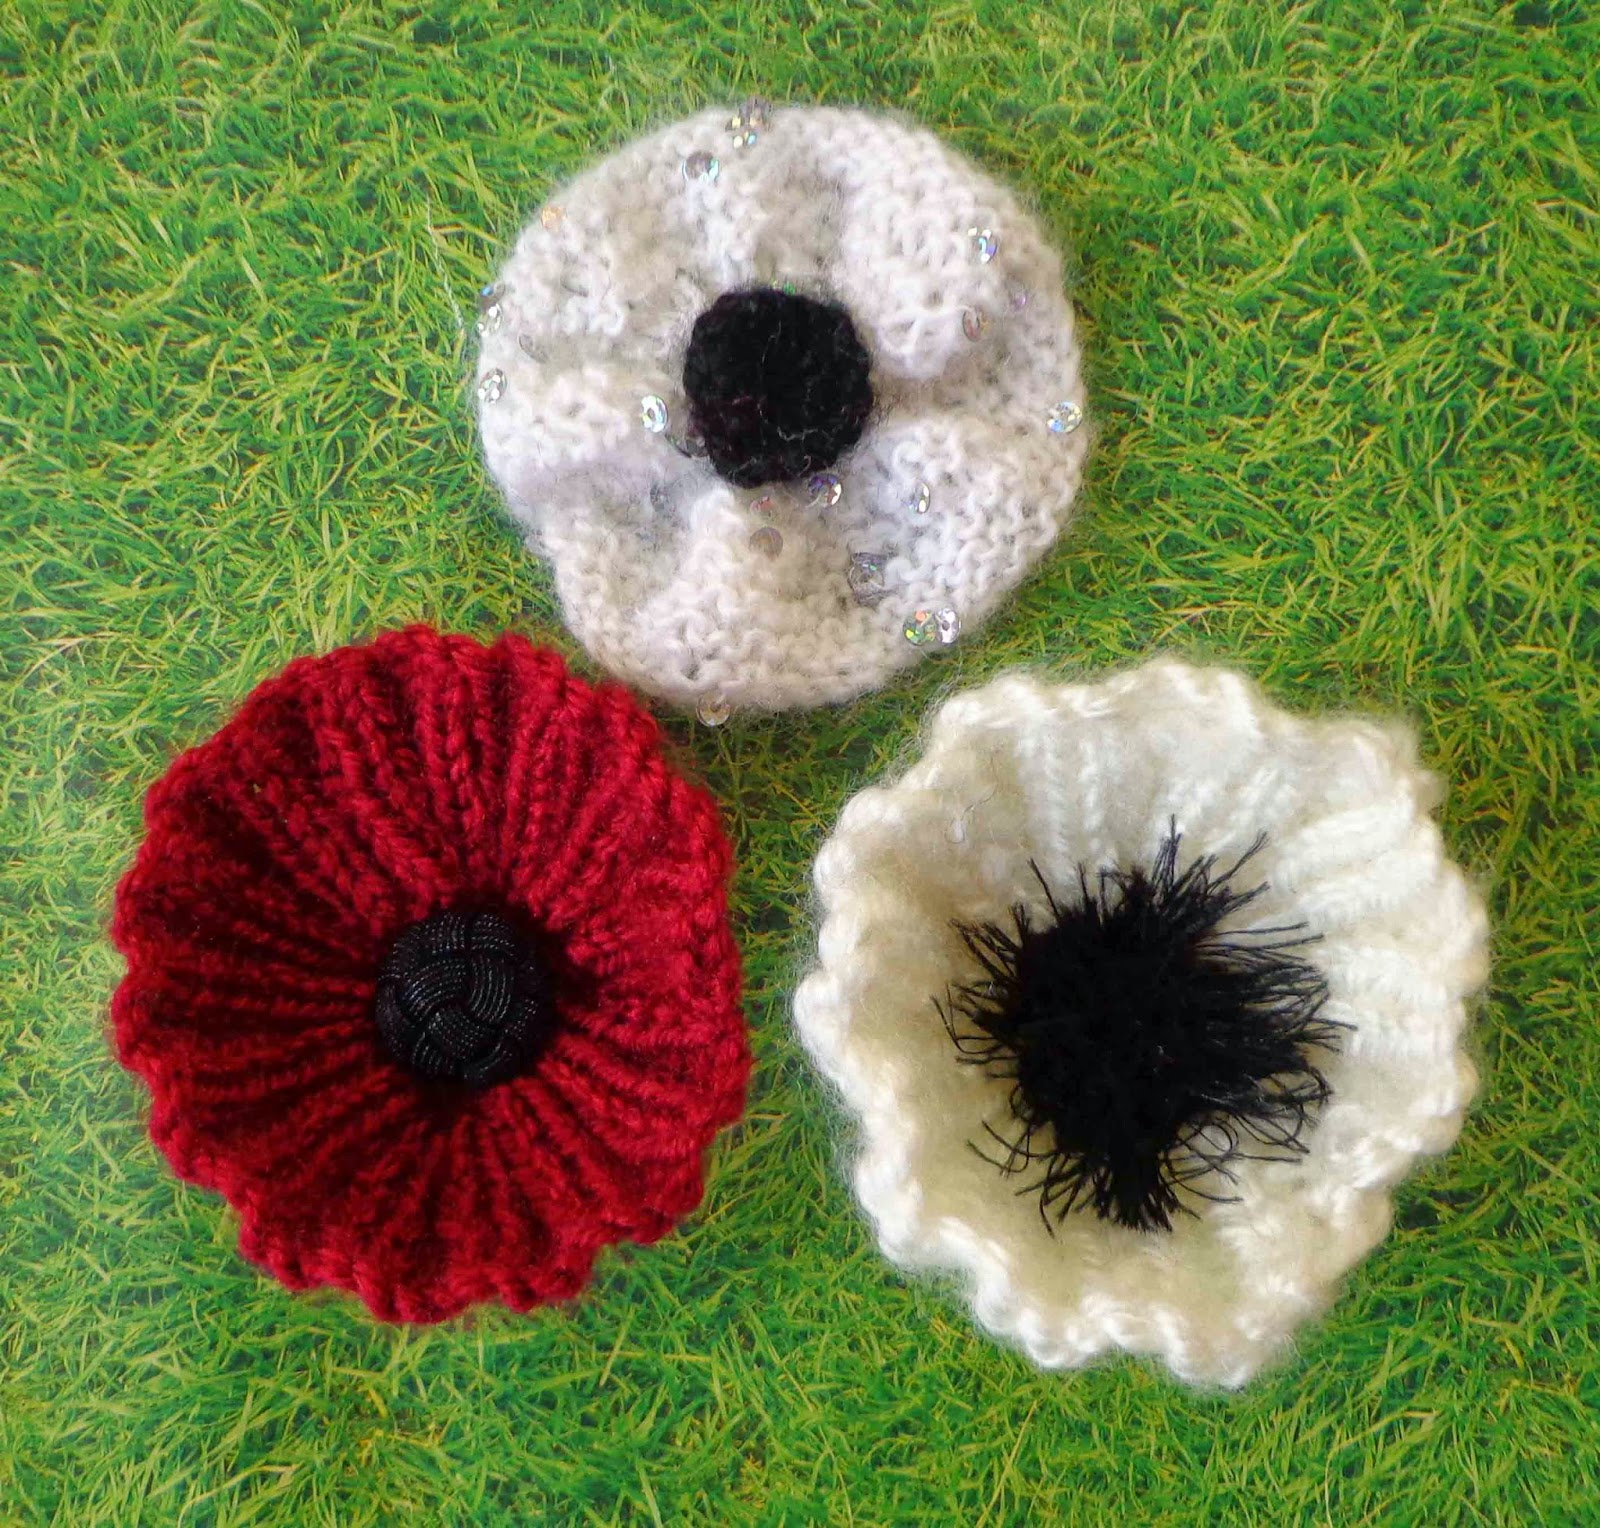 Easy Knitting Patterns For Baby Booties : Hippystitch: Round Rib or Knit Poppy Pattern